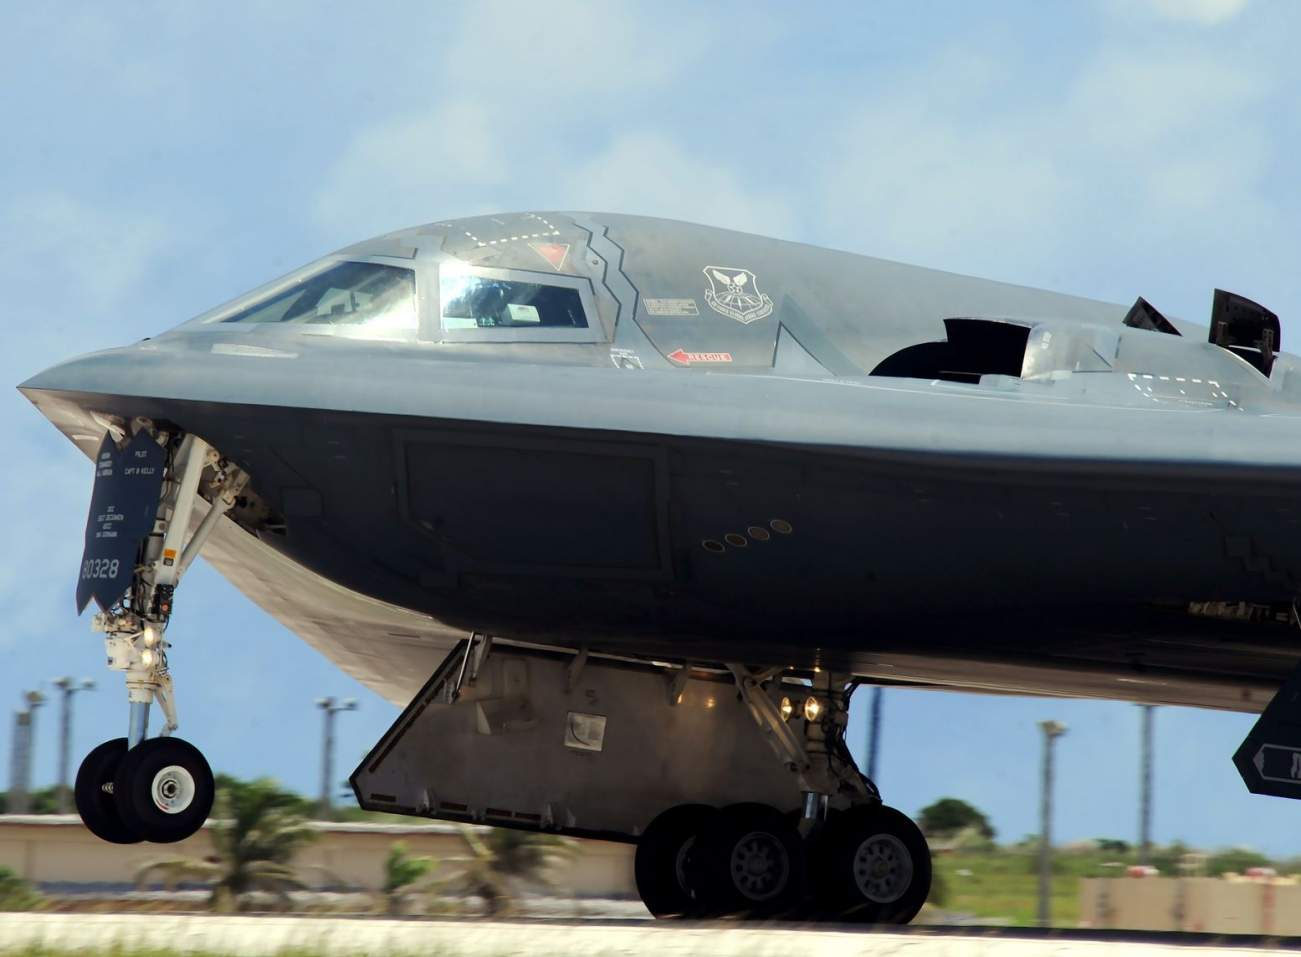 This Is ODD: Why Does the Air Force Have Only 20 B-2 Stealth Bombers?